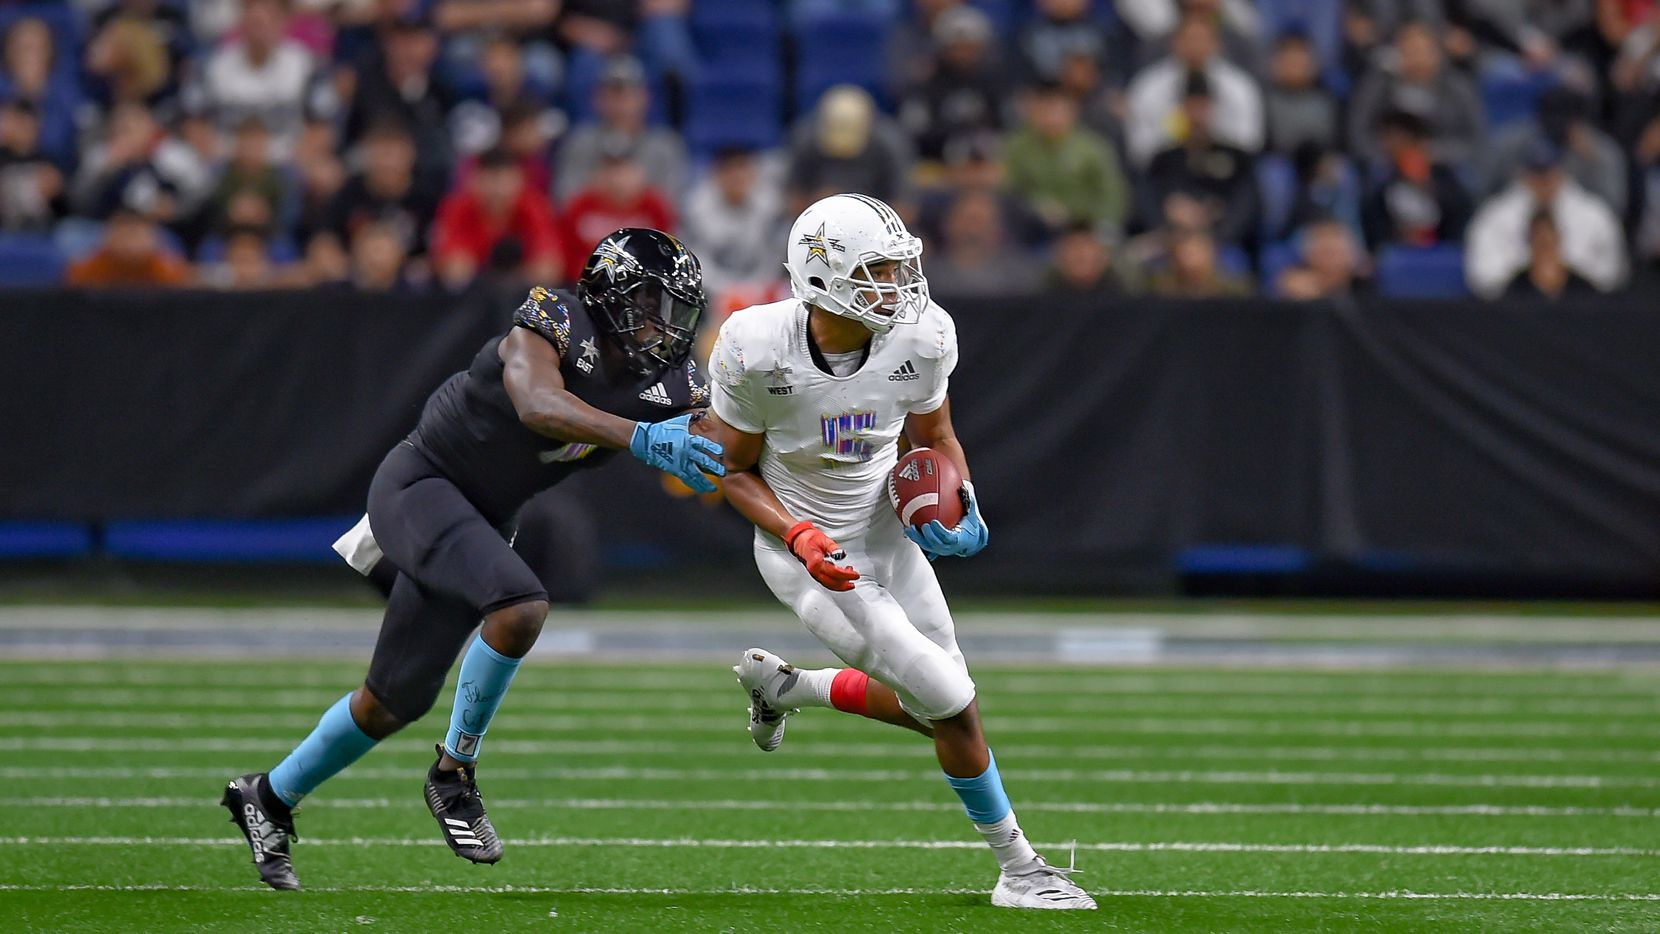 Wide receiver Bru McCoy (5) runs the ball during the All-American Bowl in January at the Alamodome. (Photo by Daniel Dunn/Icon Sportswire via Getty Images)